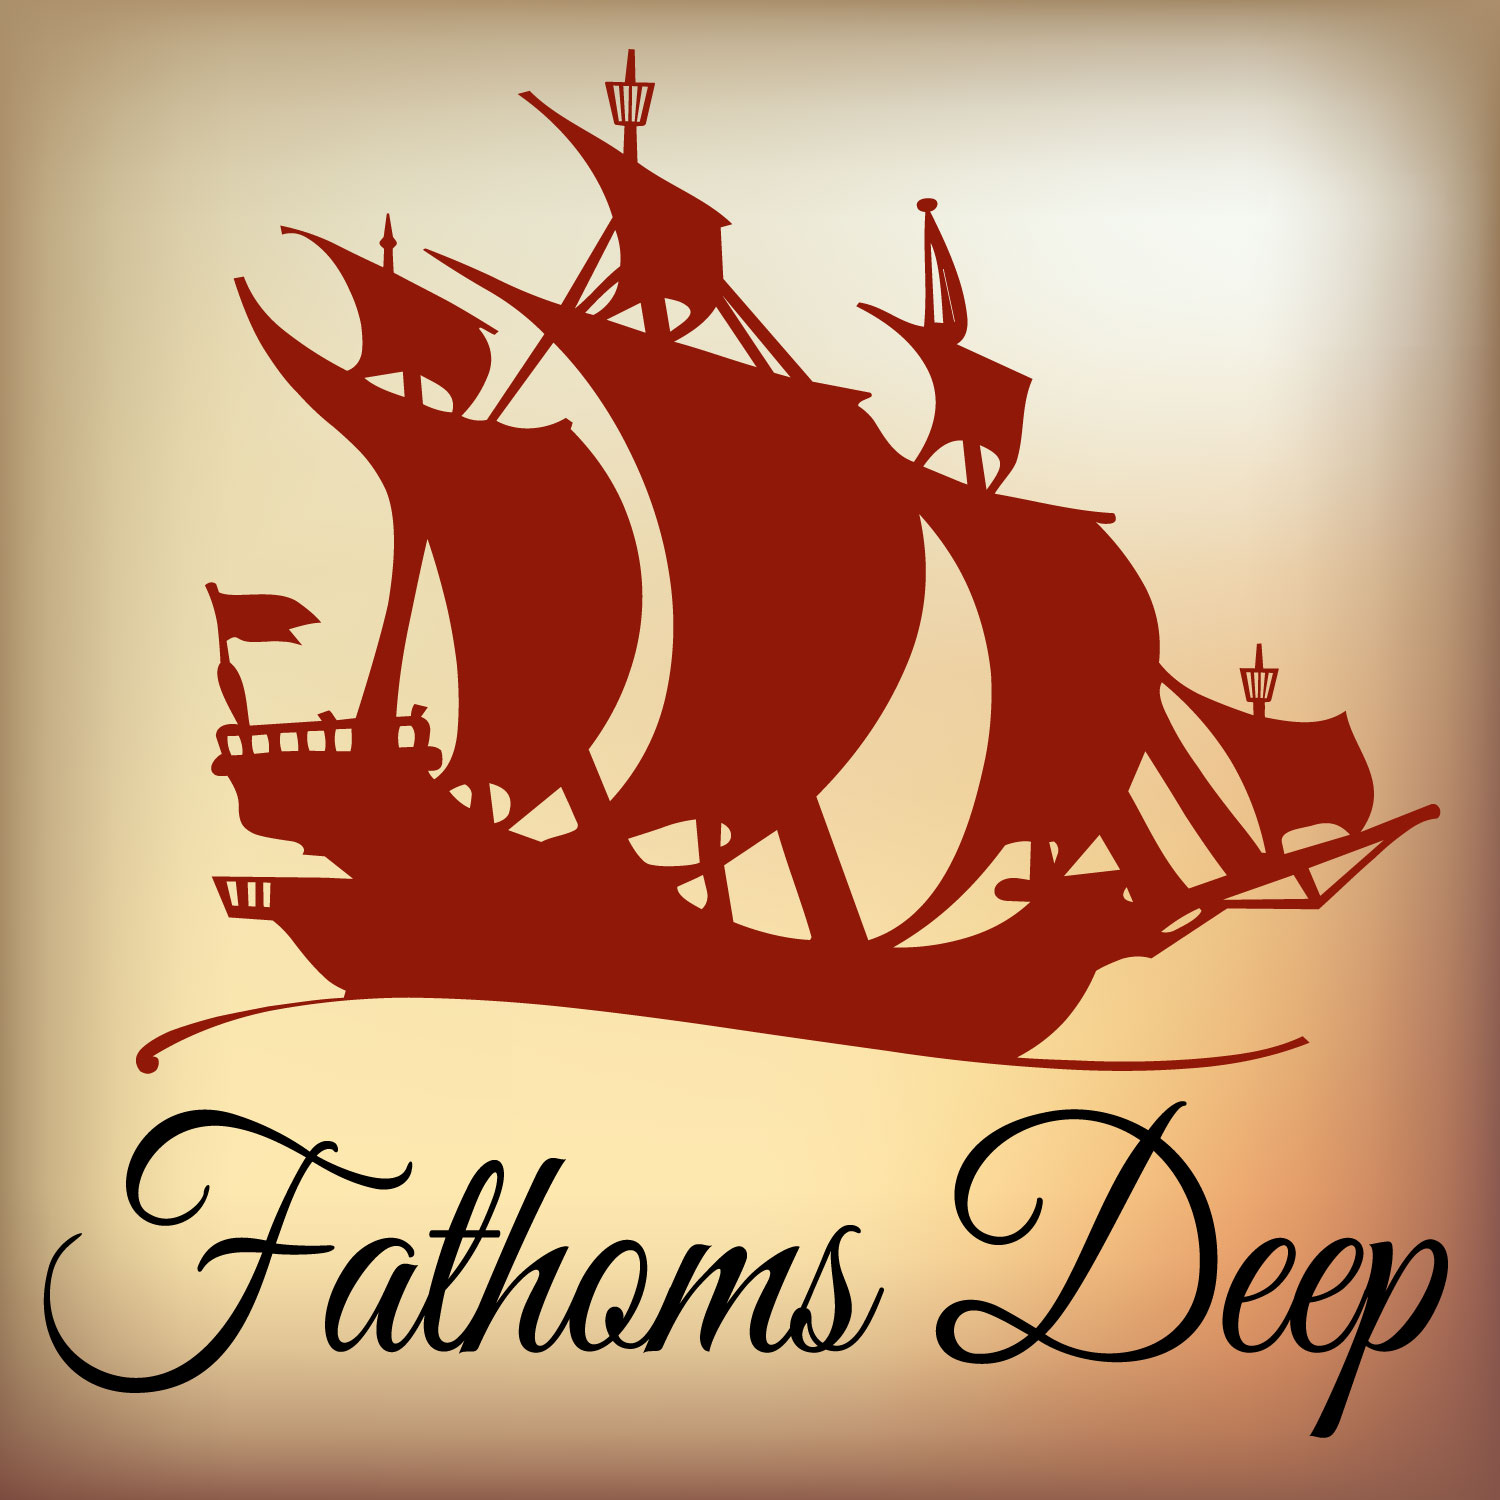 Fathoms Deep Podcast  An in-depth look at the narrative and character development of the epic Starz series Black Sails with episode by episode analysis and cast and creator interviews.